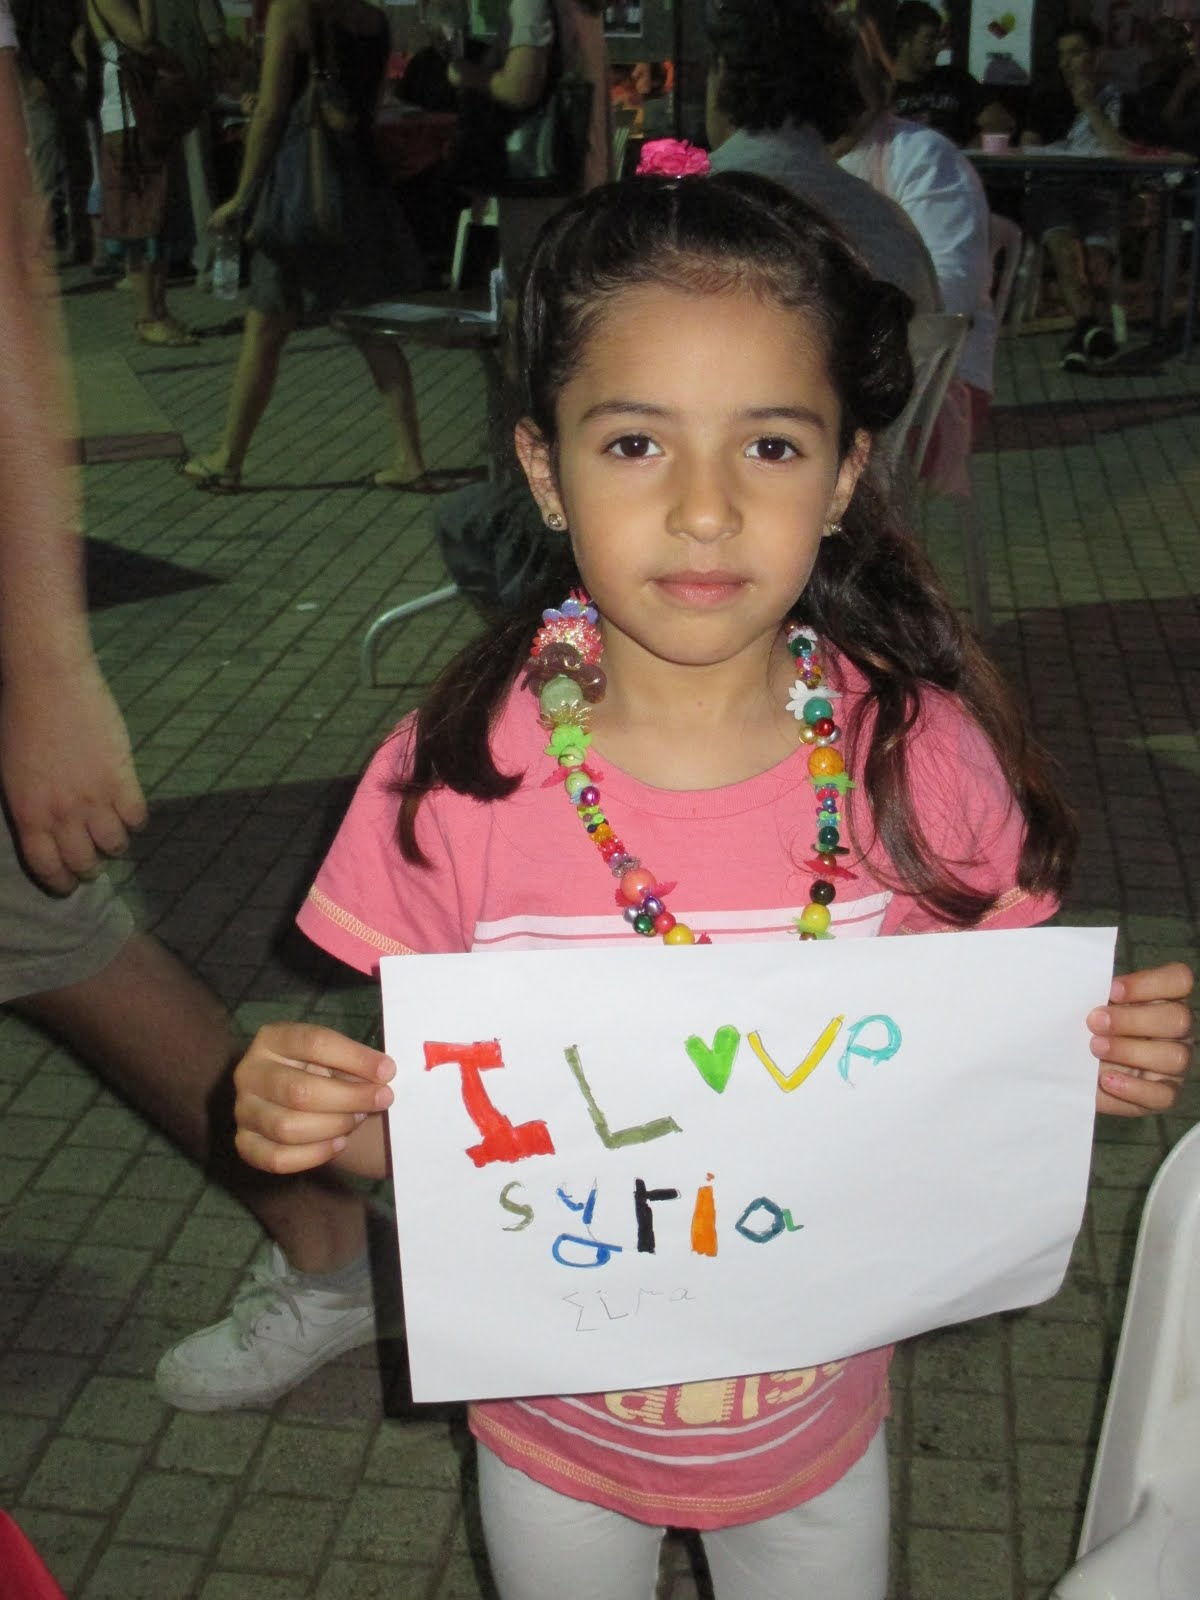 Syrian Refugee with a Sign She Made, Chania, Crete, June 2015